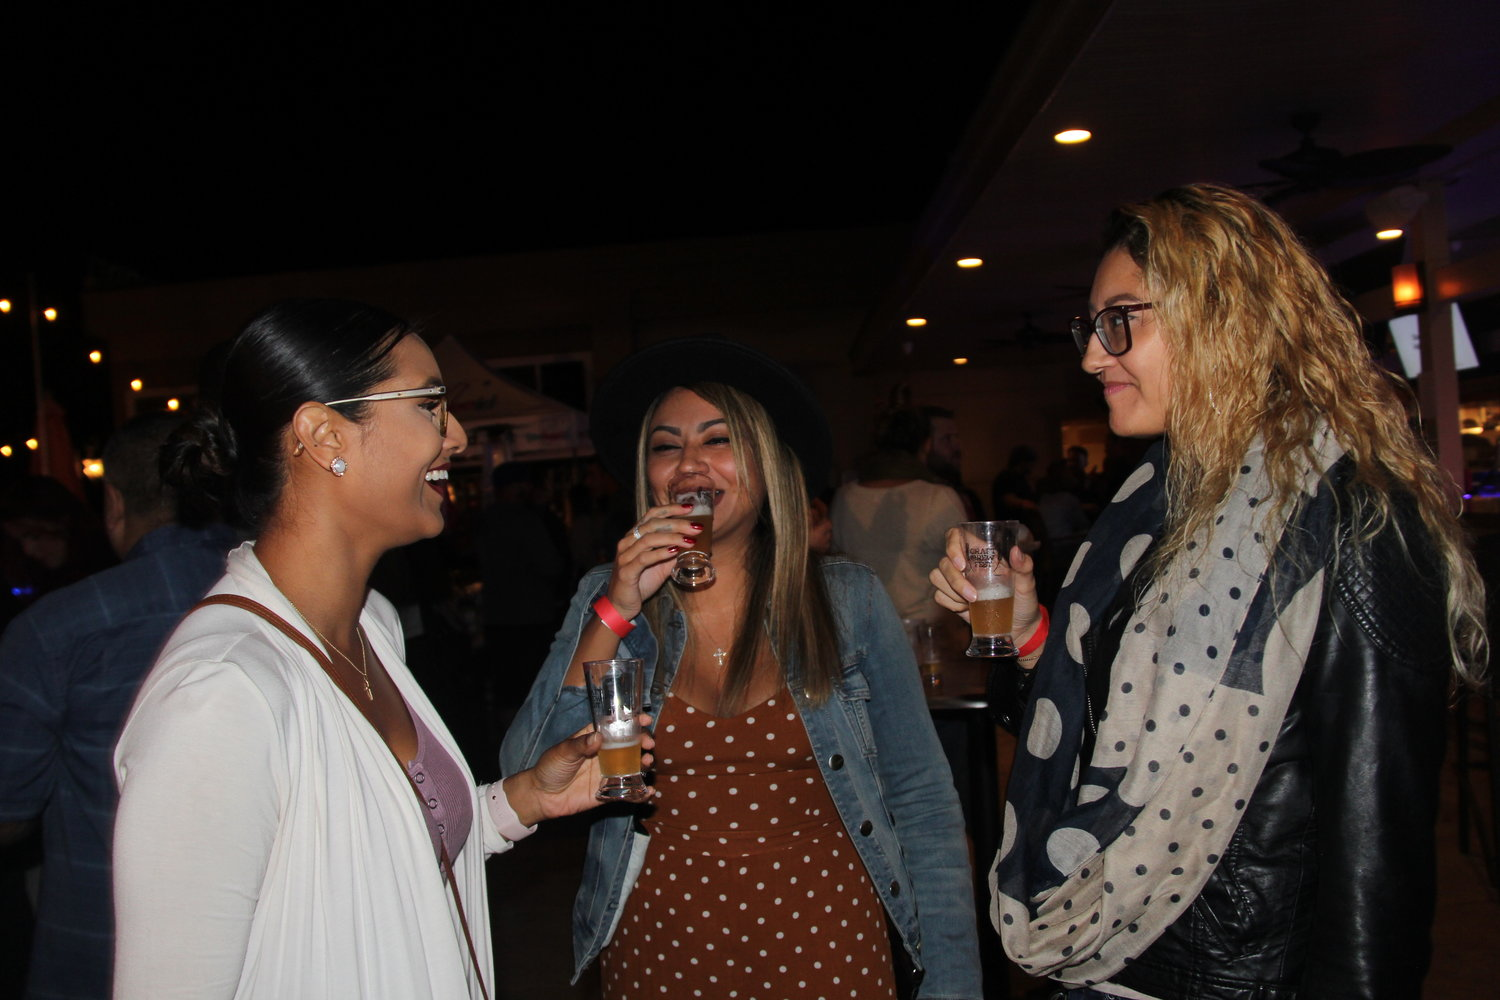 Girlfriends from Baldwin, Shariza Schiemann, left, Jennifer Ramos and Madeline Ramos, right, sampled some of the craft beers during the festival.